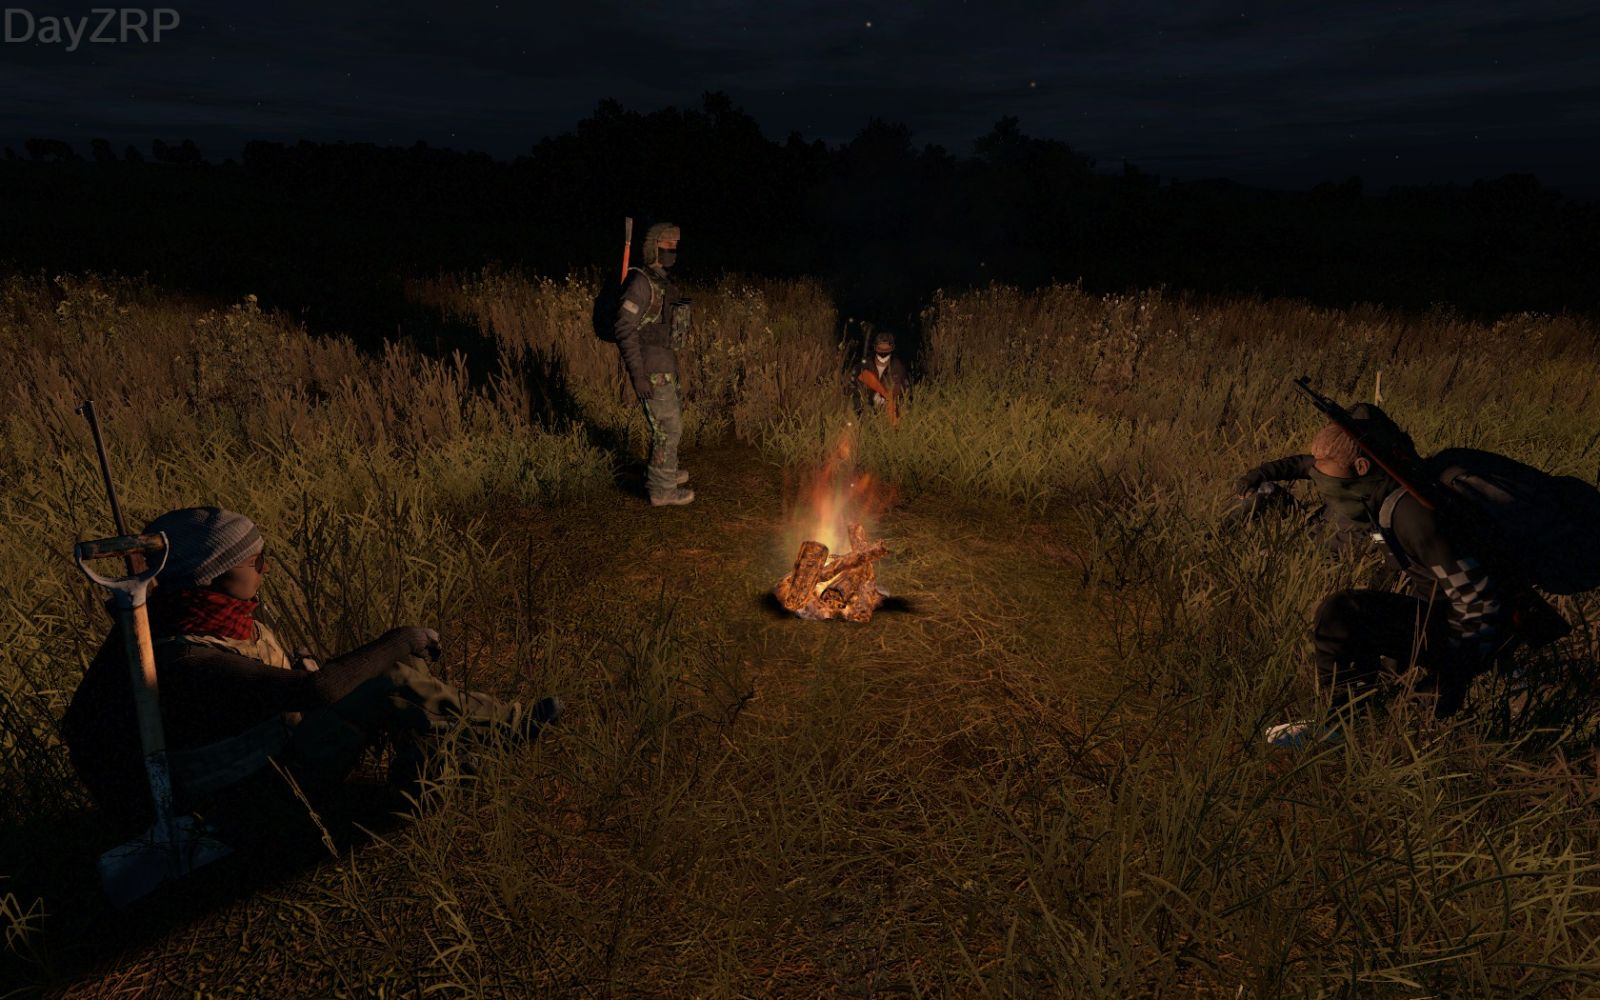 Good old campfire